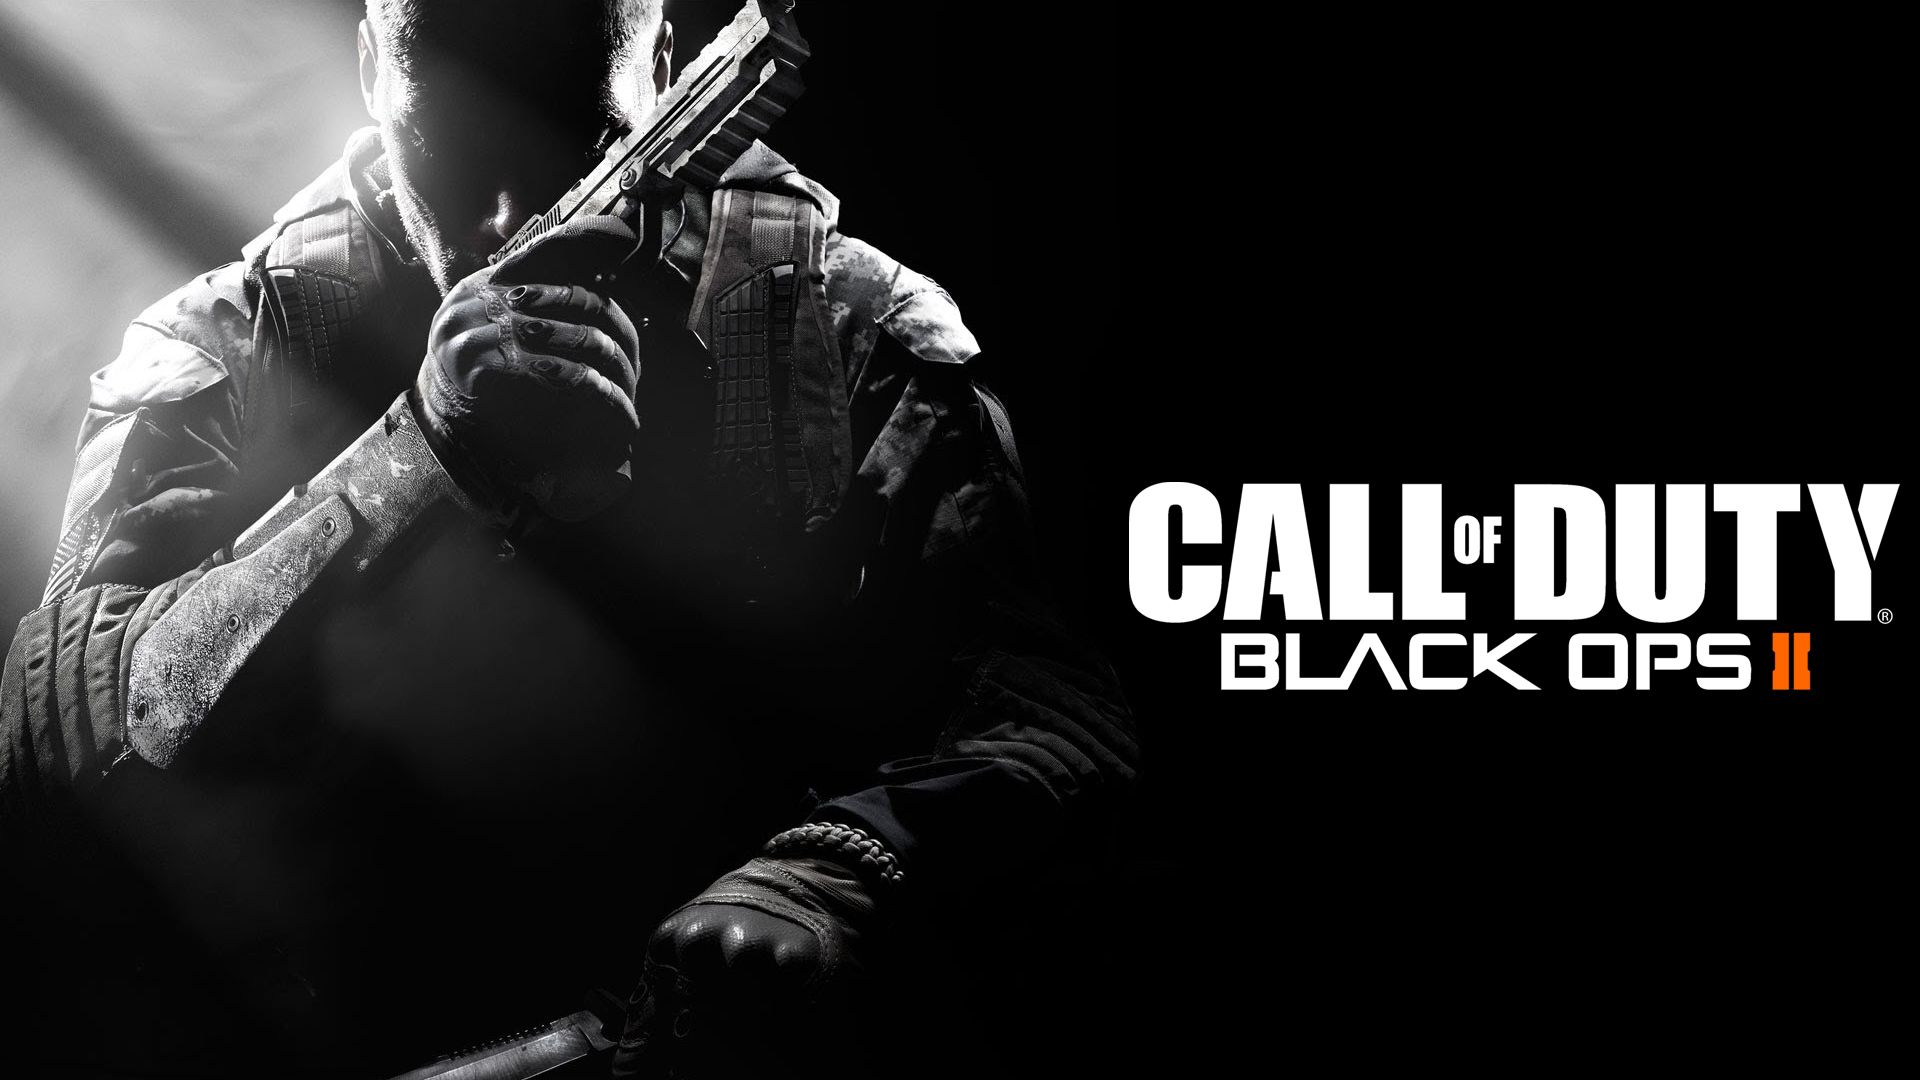 call_of_duty_black_ops_2_wallpaper